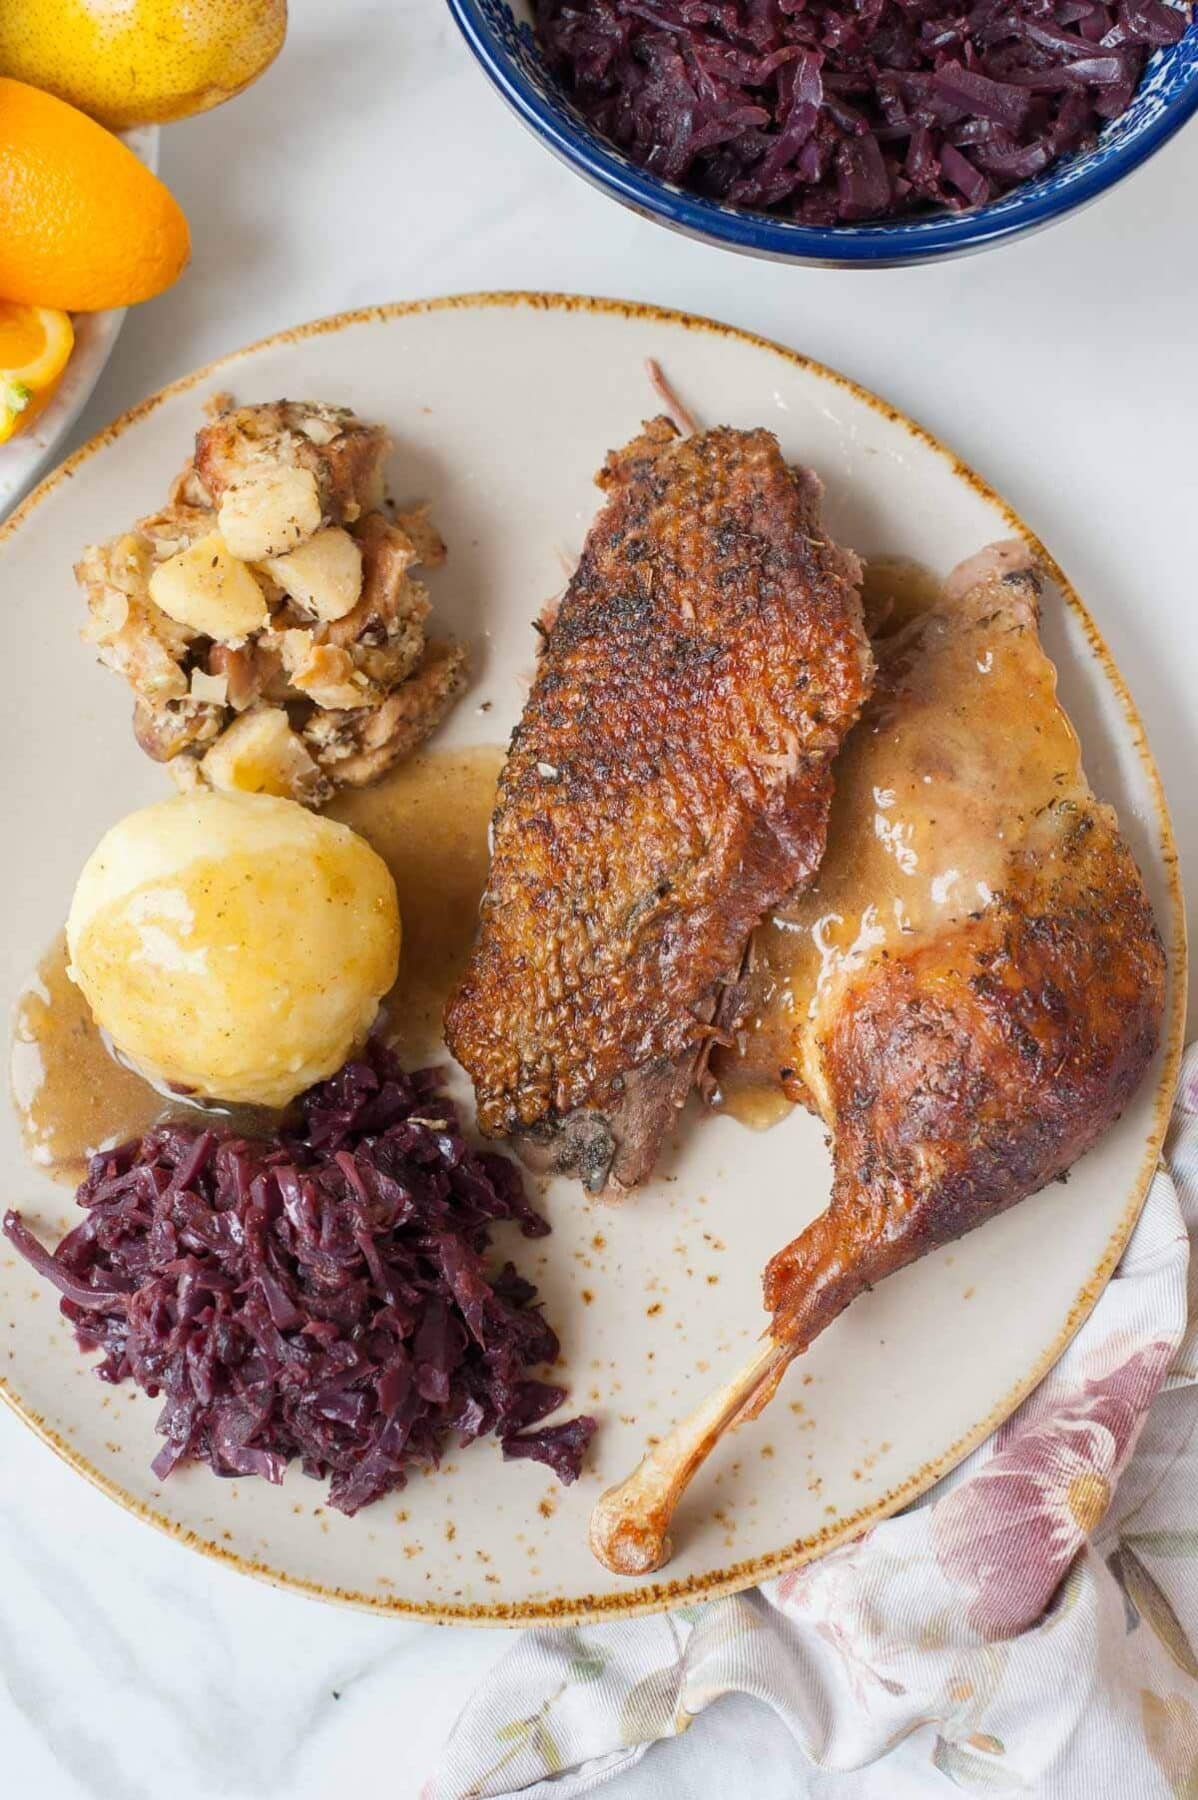 Goose breast and leg on a brown plate with stuffing, potato dumpling, braised red cabbage, and gravy.